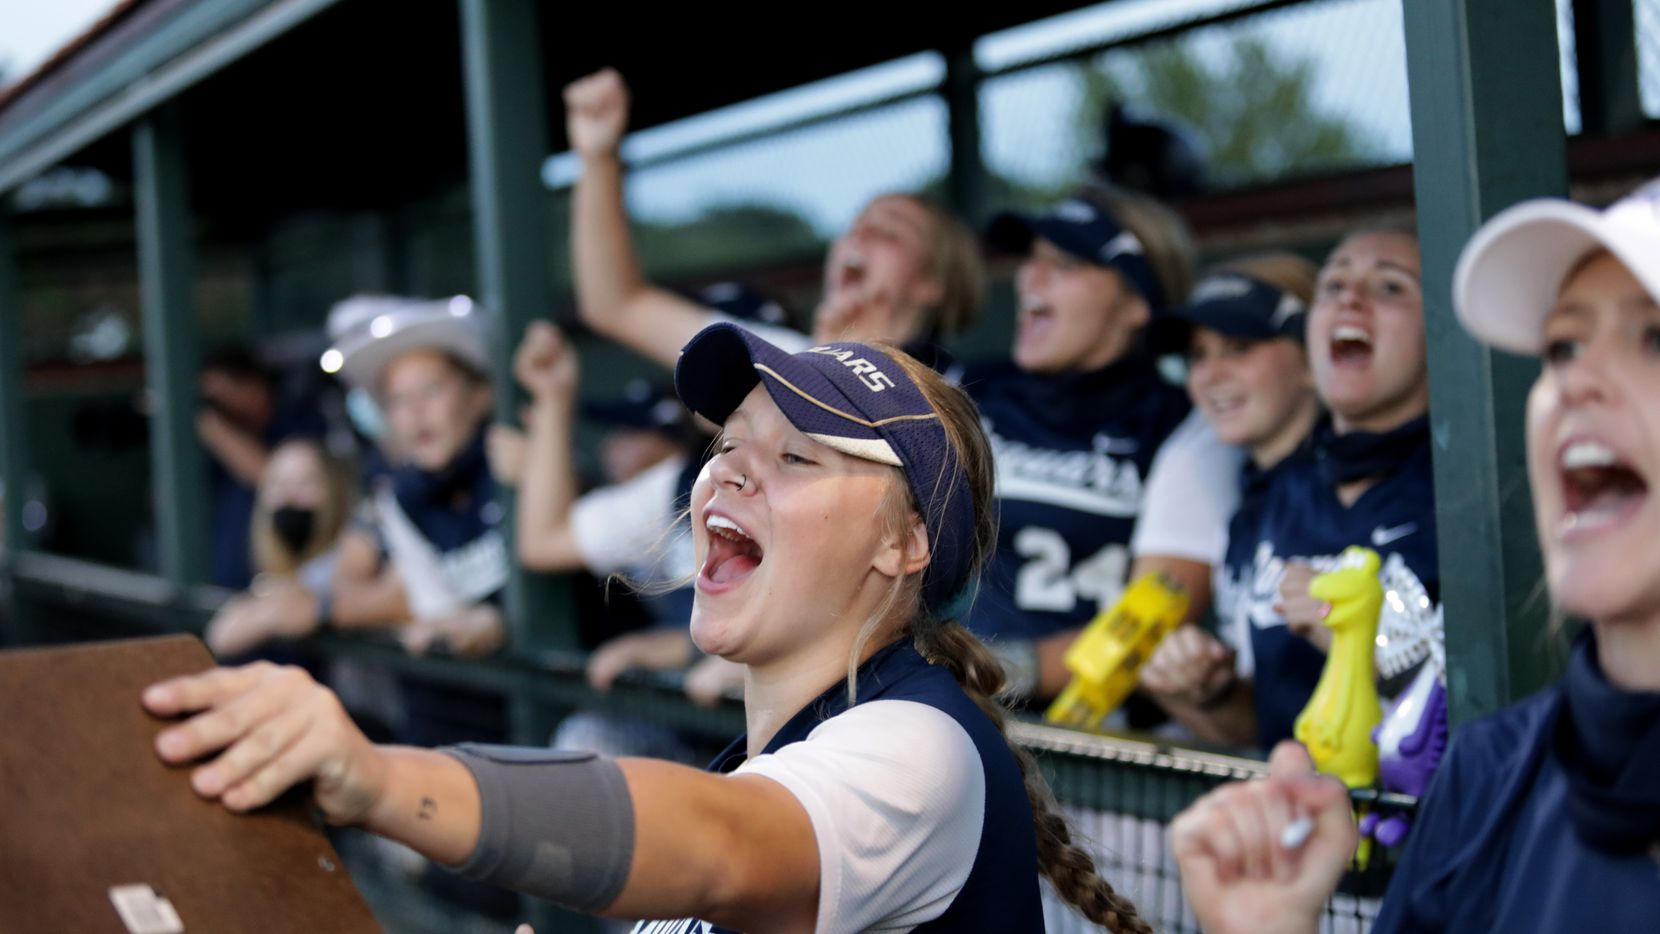 Flower Mound players cheer on their team during a 10-0 victory over Allen on Friday night in Game 2 of a best-of-3 Class 6A Region I quarterfinal series. (Jason Janik/Special Contributor)